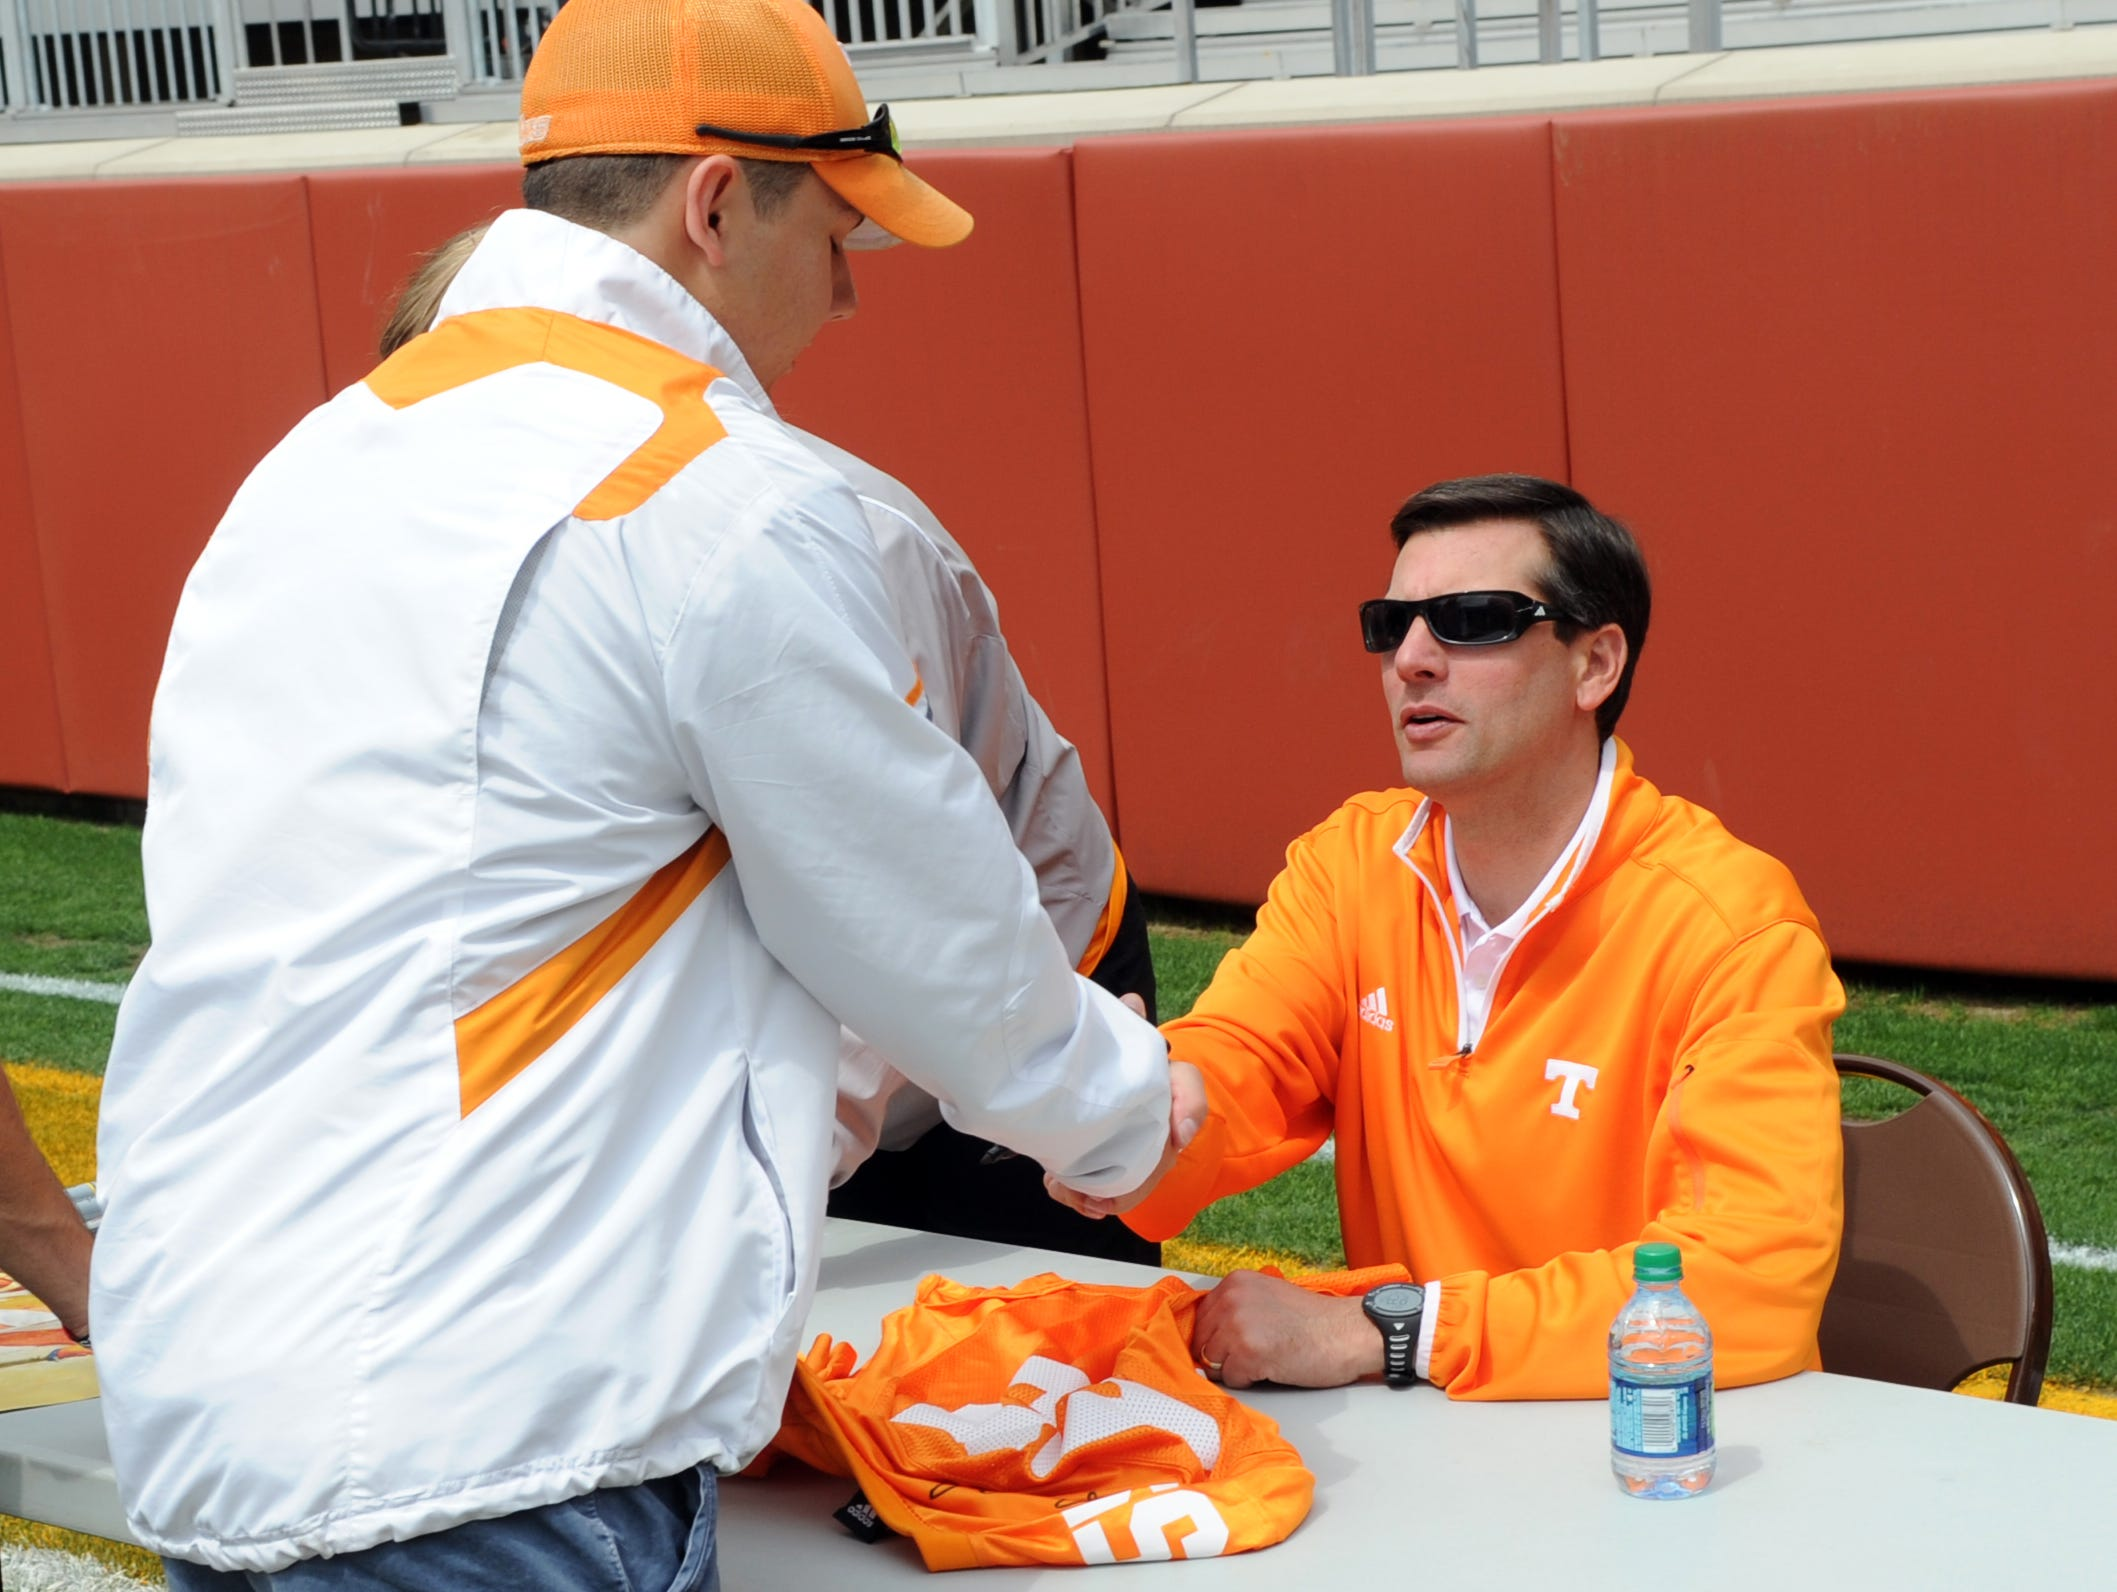 Tennessee head coach Derek Dooley shakes hands with Corey Blevins from Jasper, Tenn., during Fan Day prior to the Orange and White Game at Neyland Stadium Saturday, April 21, 2012.